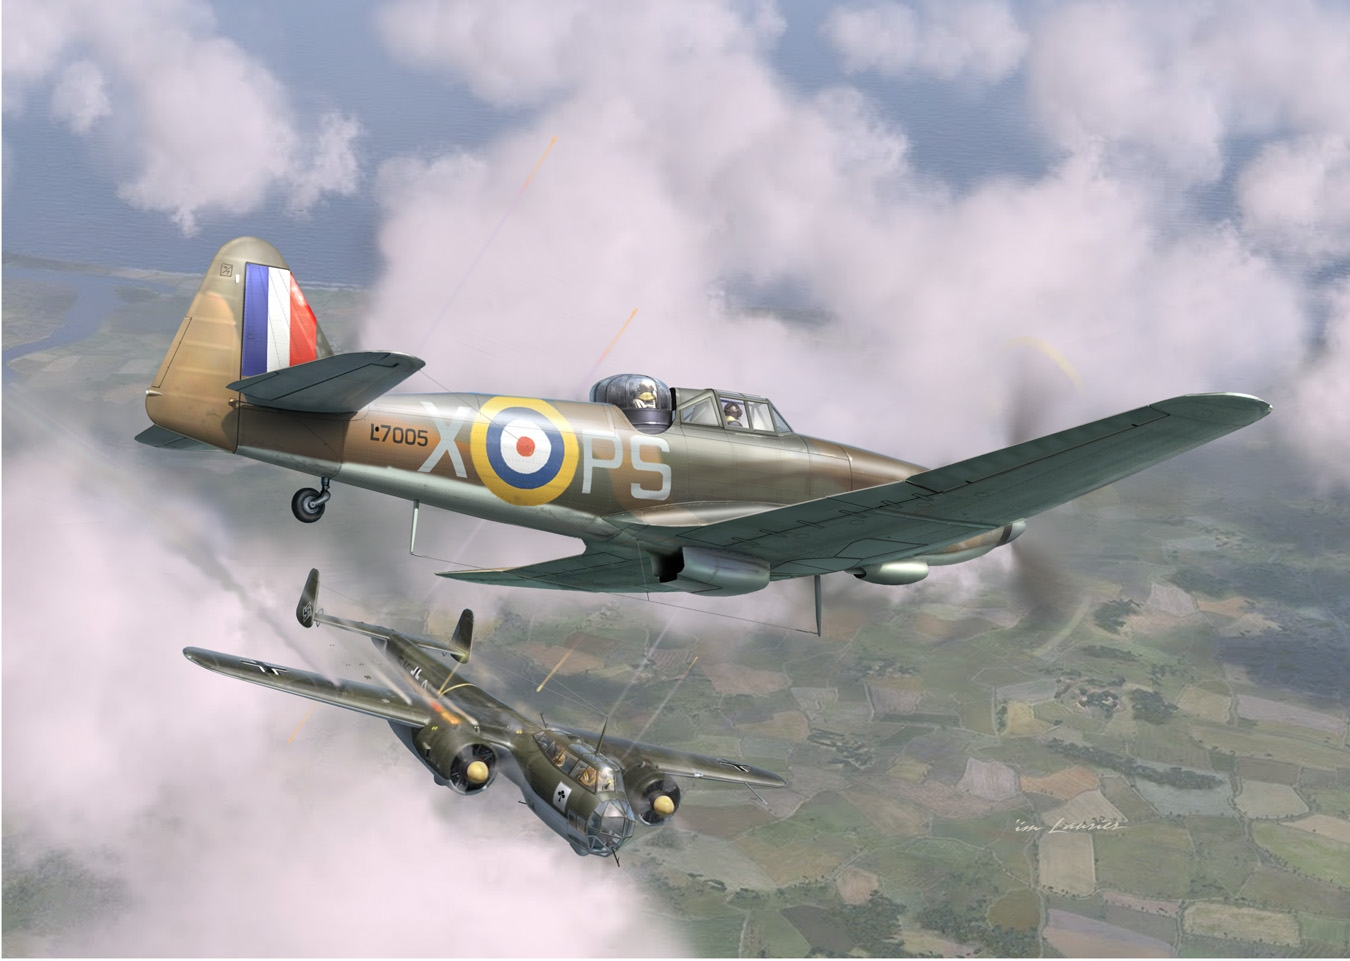 RAF Fighters vs Luftwaffe Bombers